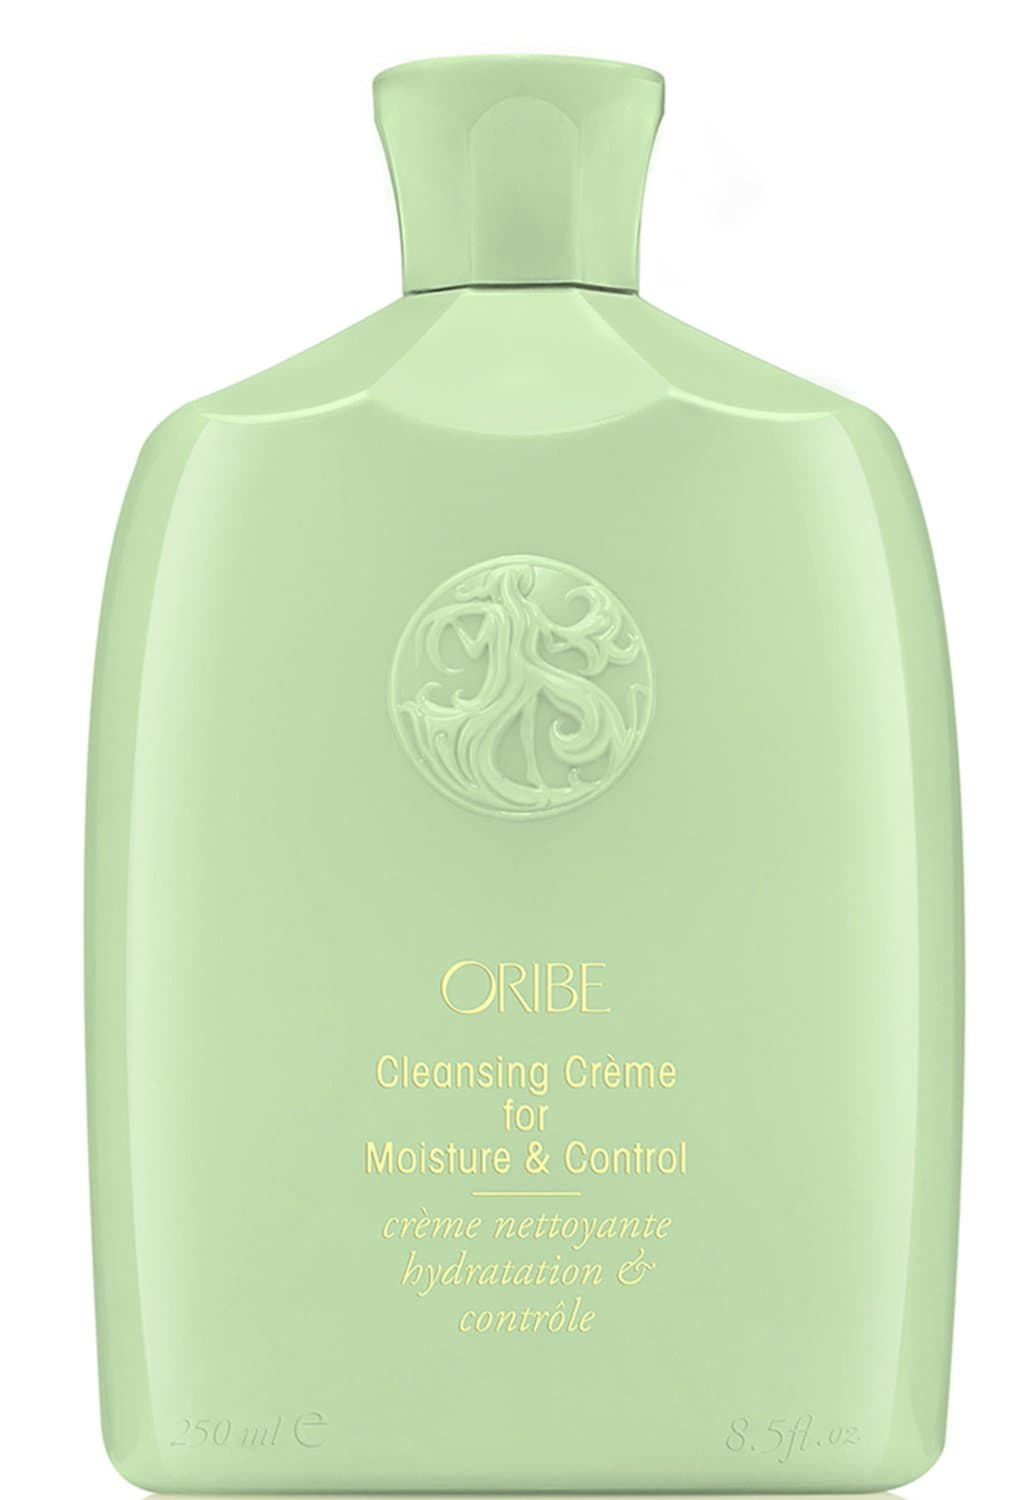 Cleansing Creme for Moisture & Control 250ml | Oribe